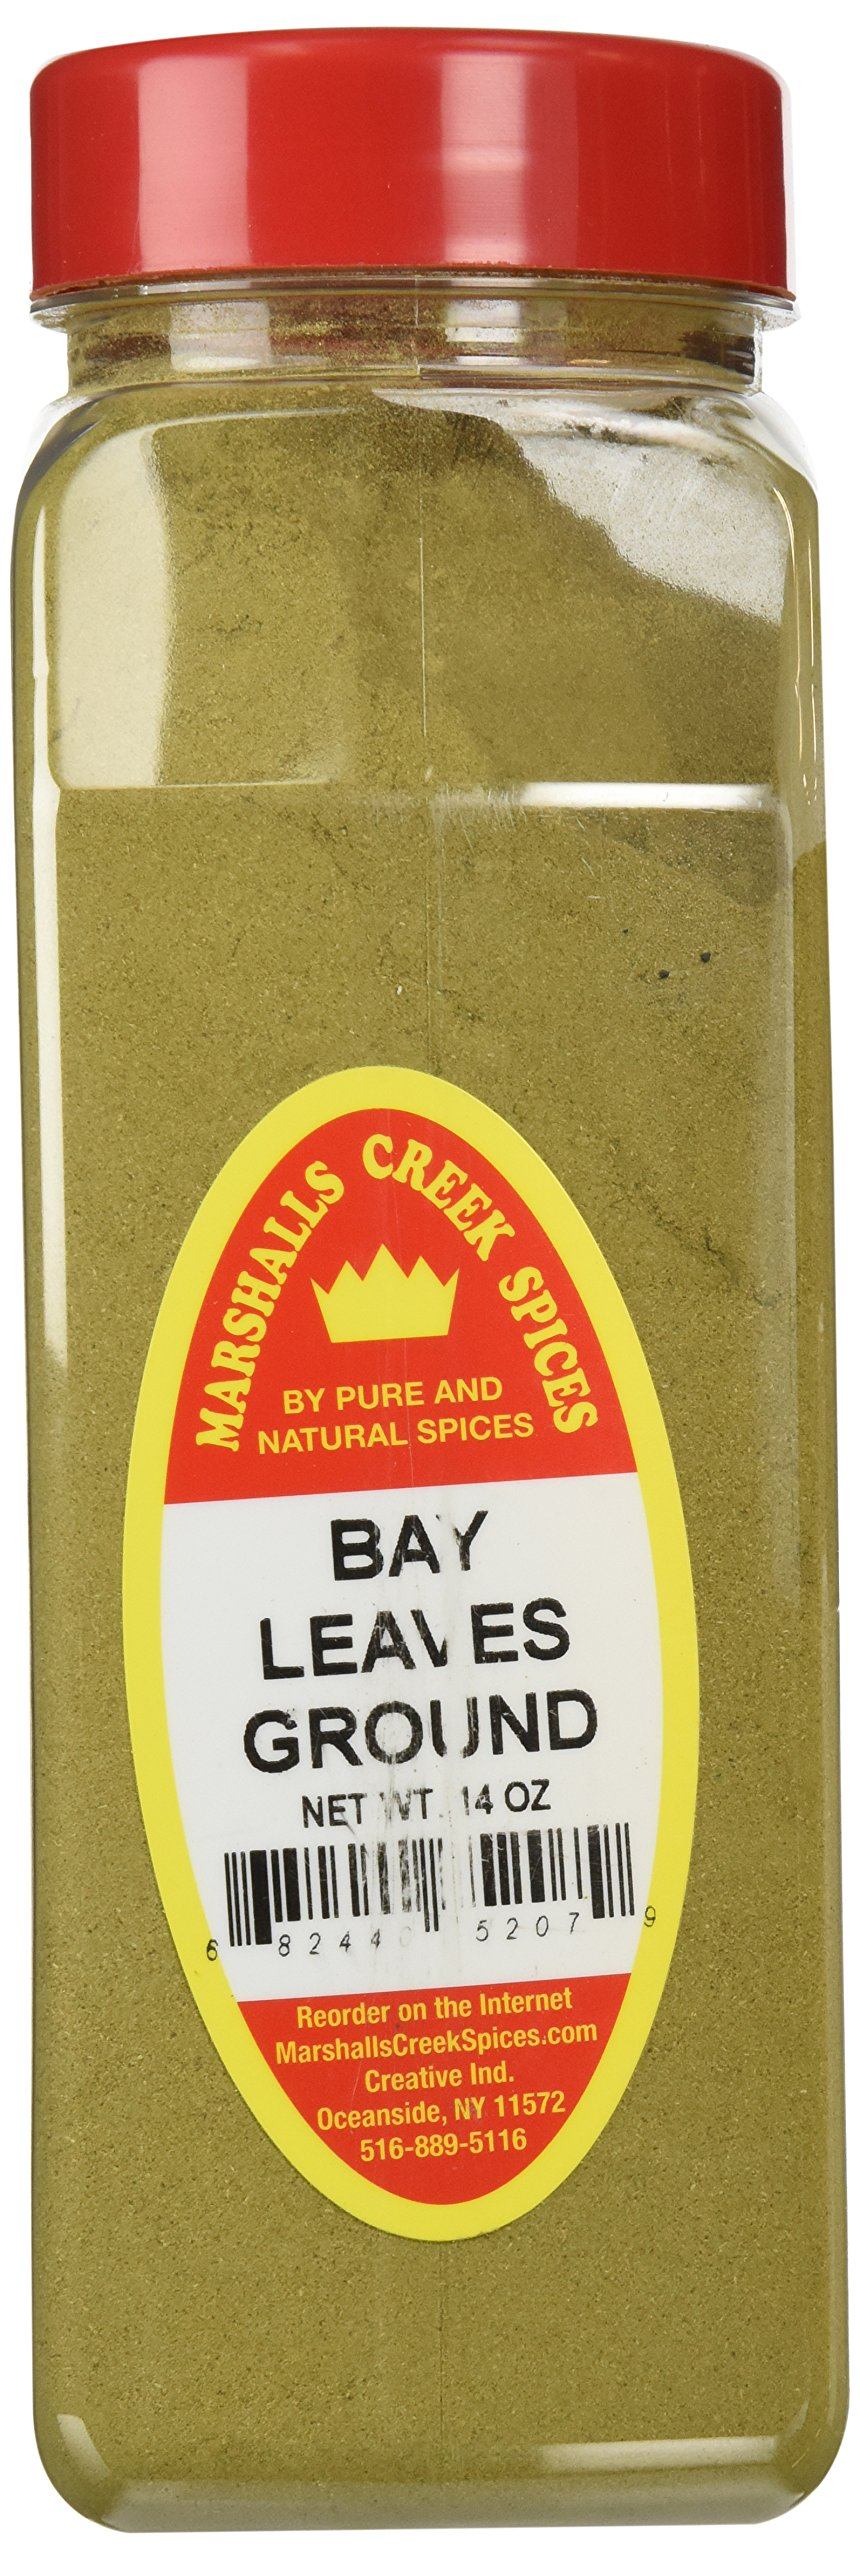 Marshalls Creek Spices X-Large Size Bay Leaves, Ground, 14 Ounces